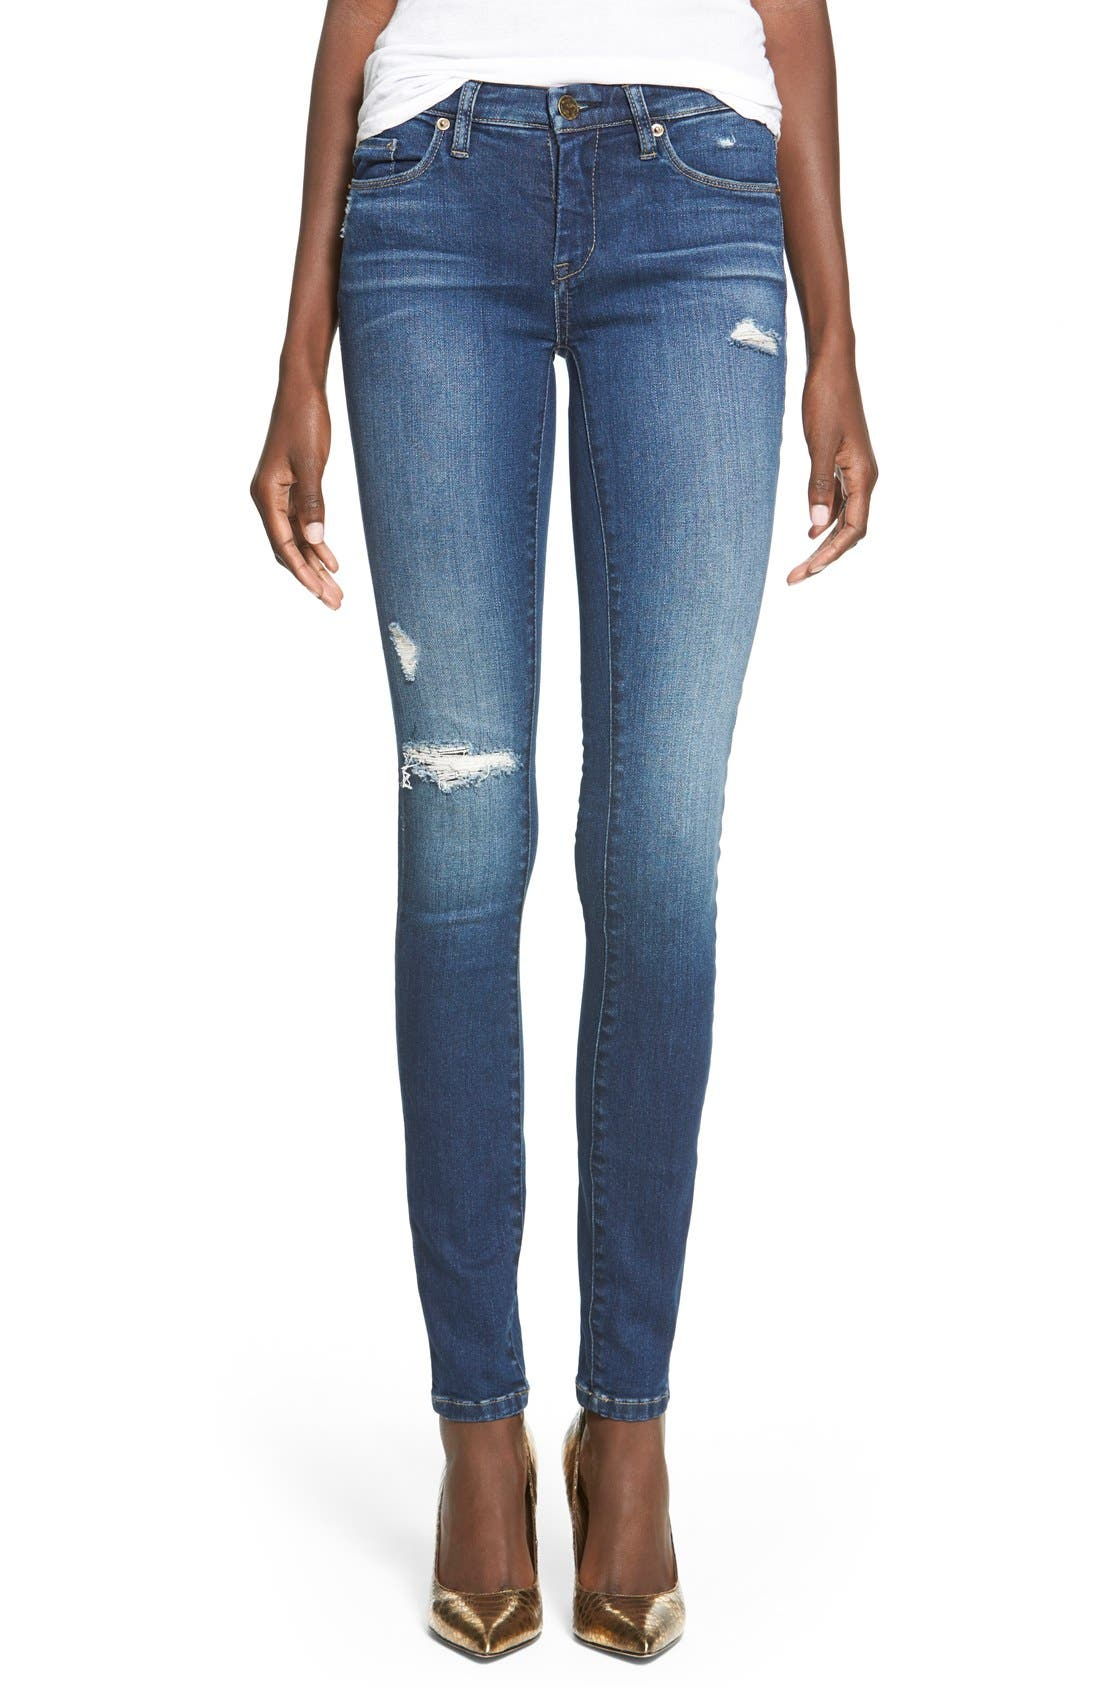 how to create distressed jeans